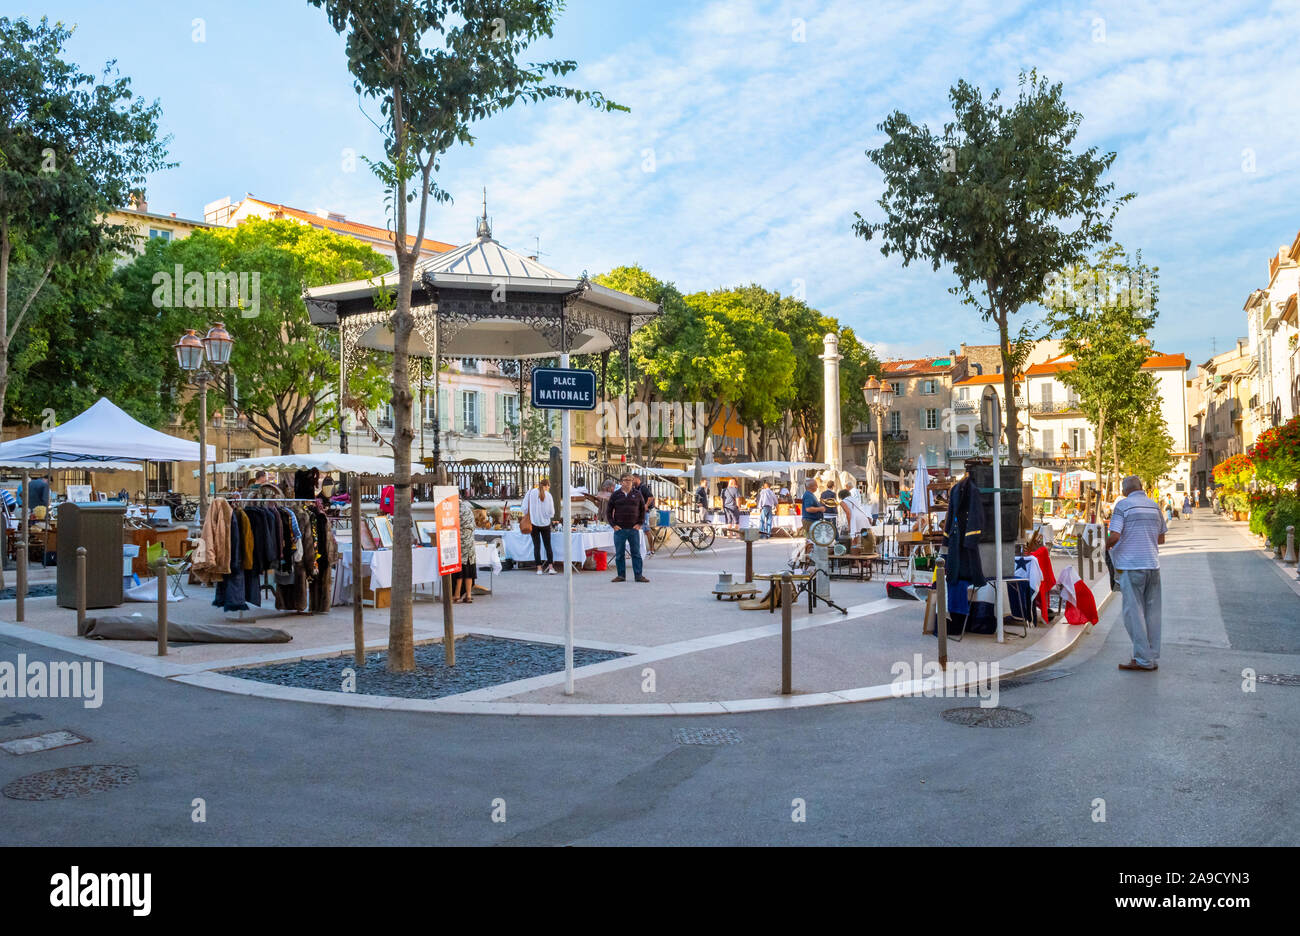 Merchants sell their antiques and collectibles at the Antibes Flea Market at Place Nationale in the seaside village of Antibes, France Stock Photo